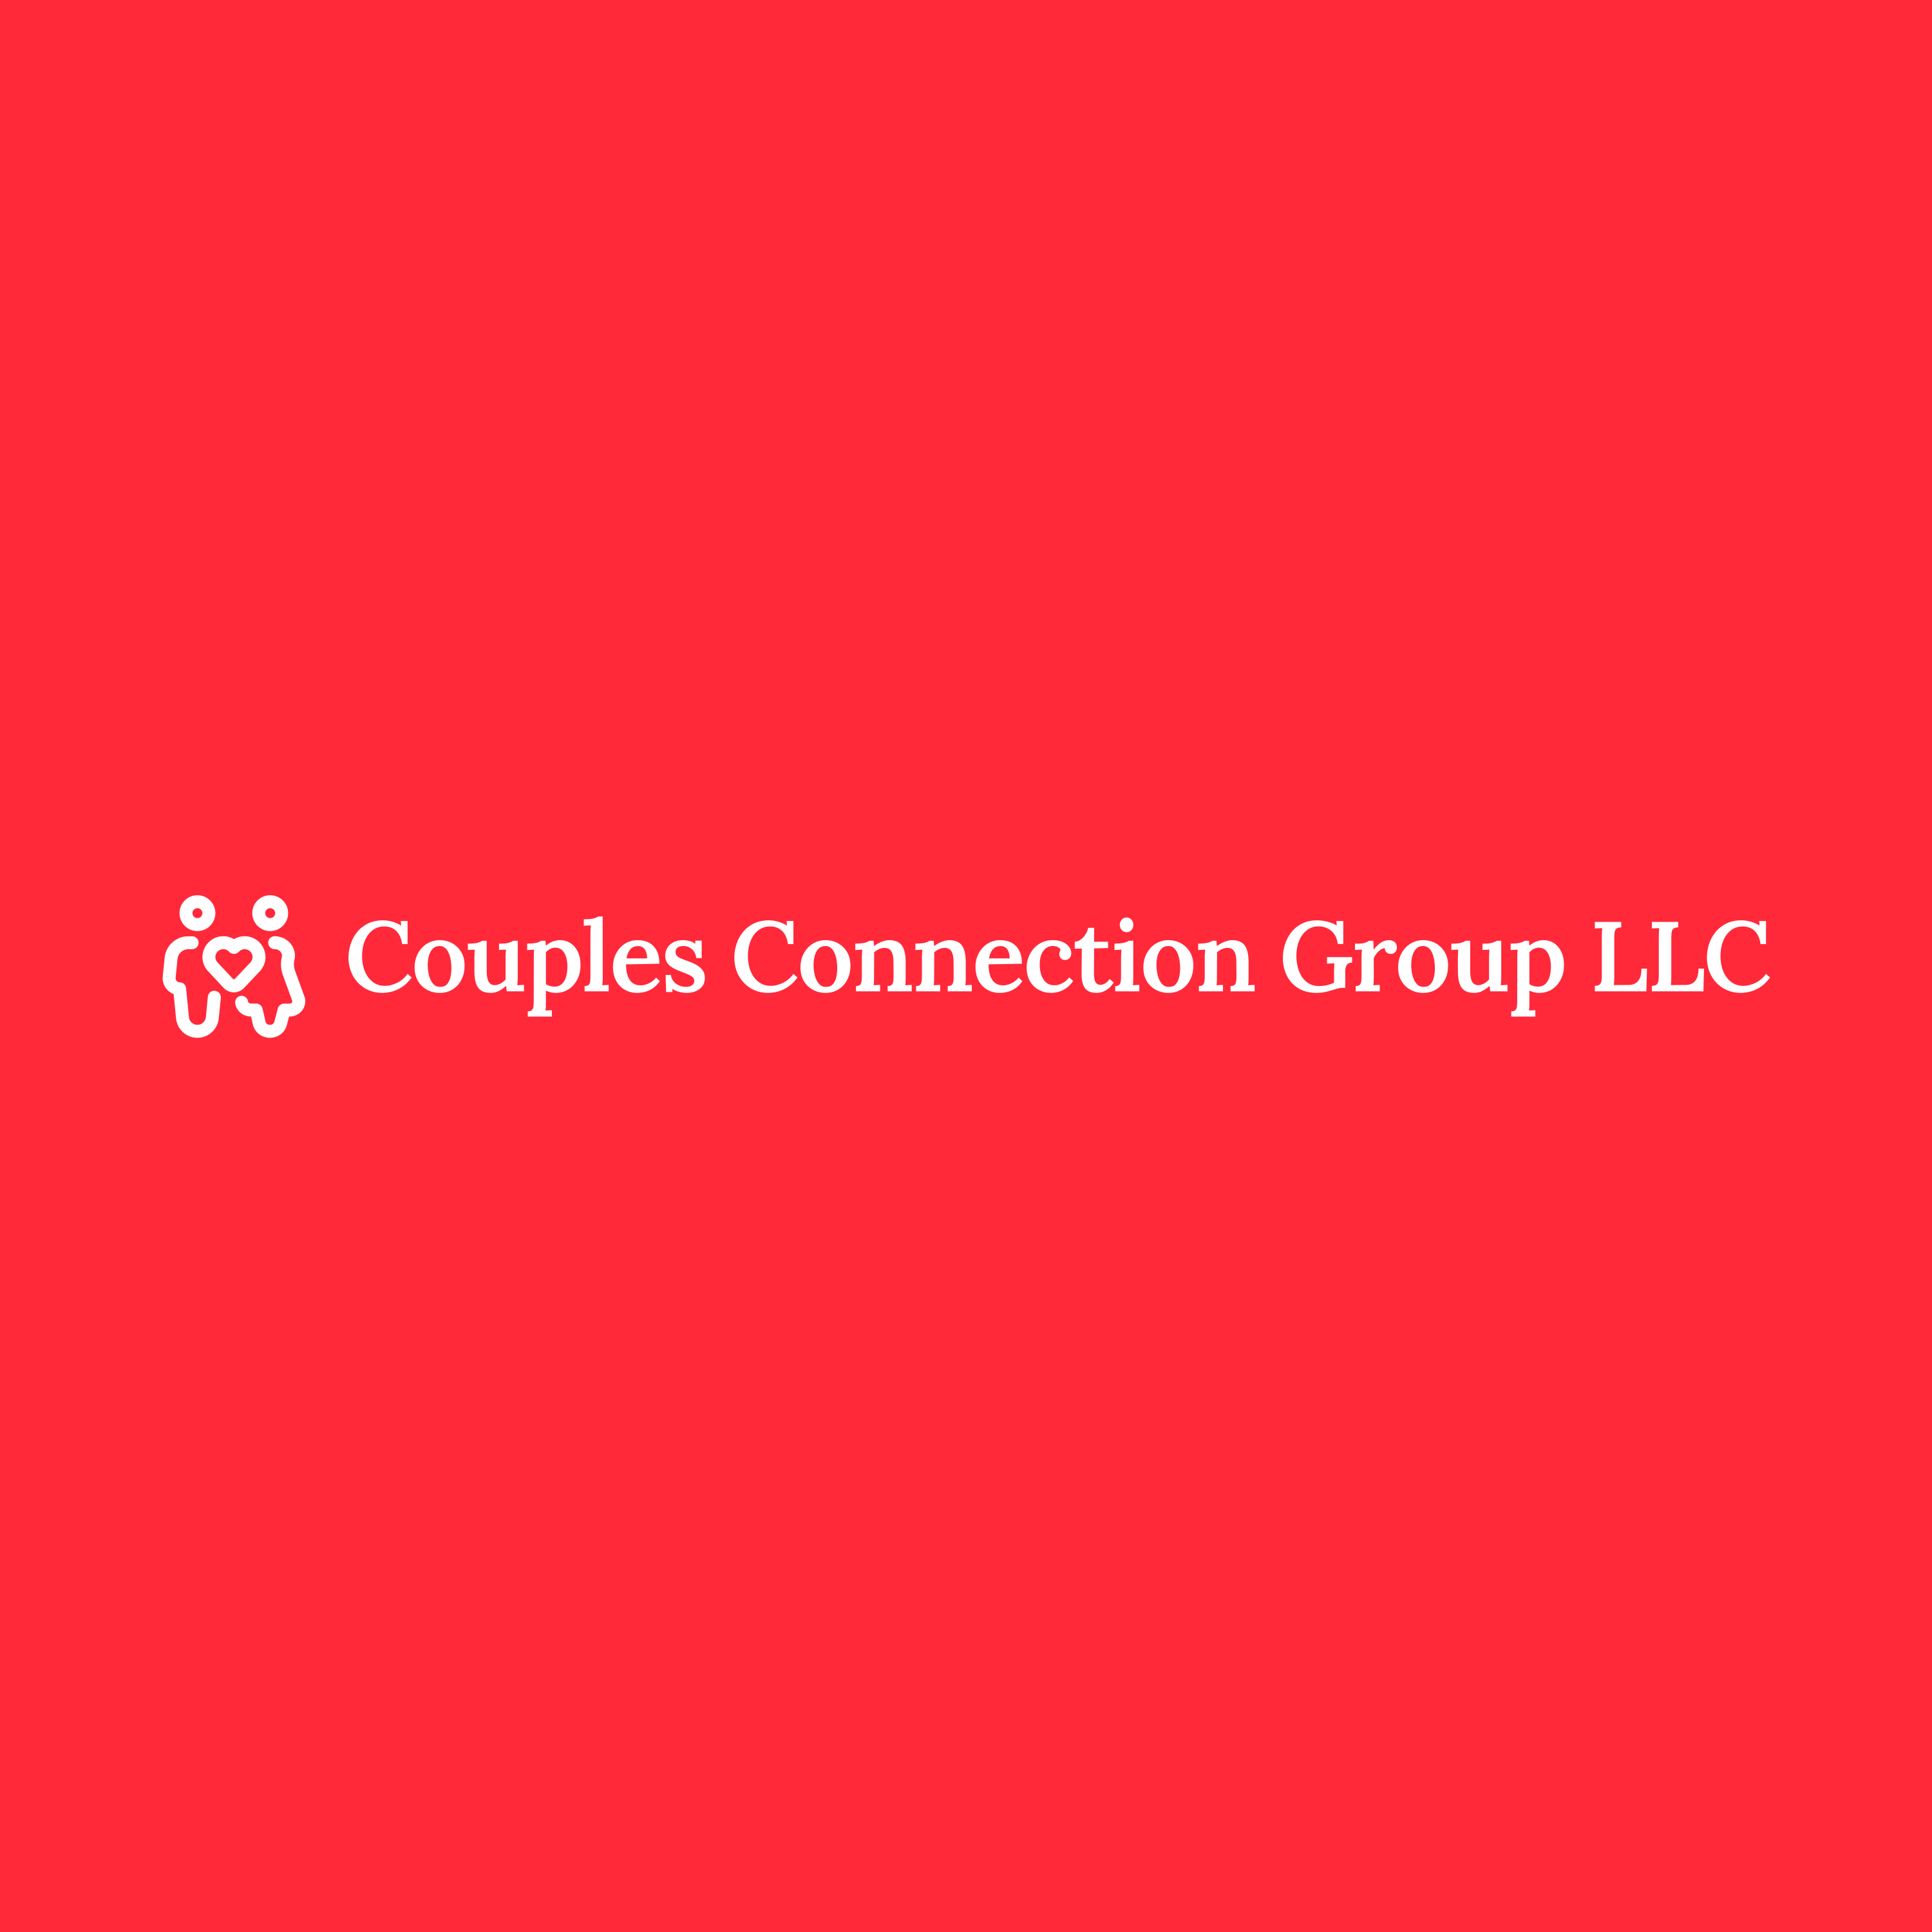 Couples Connection Group LLC